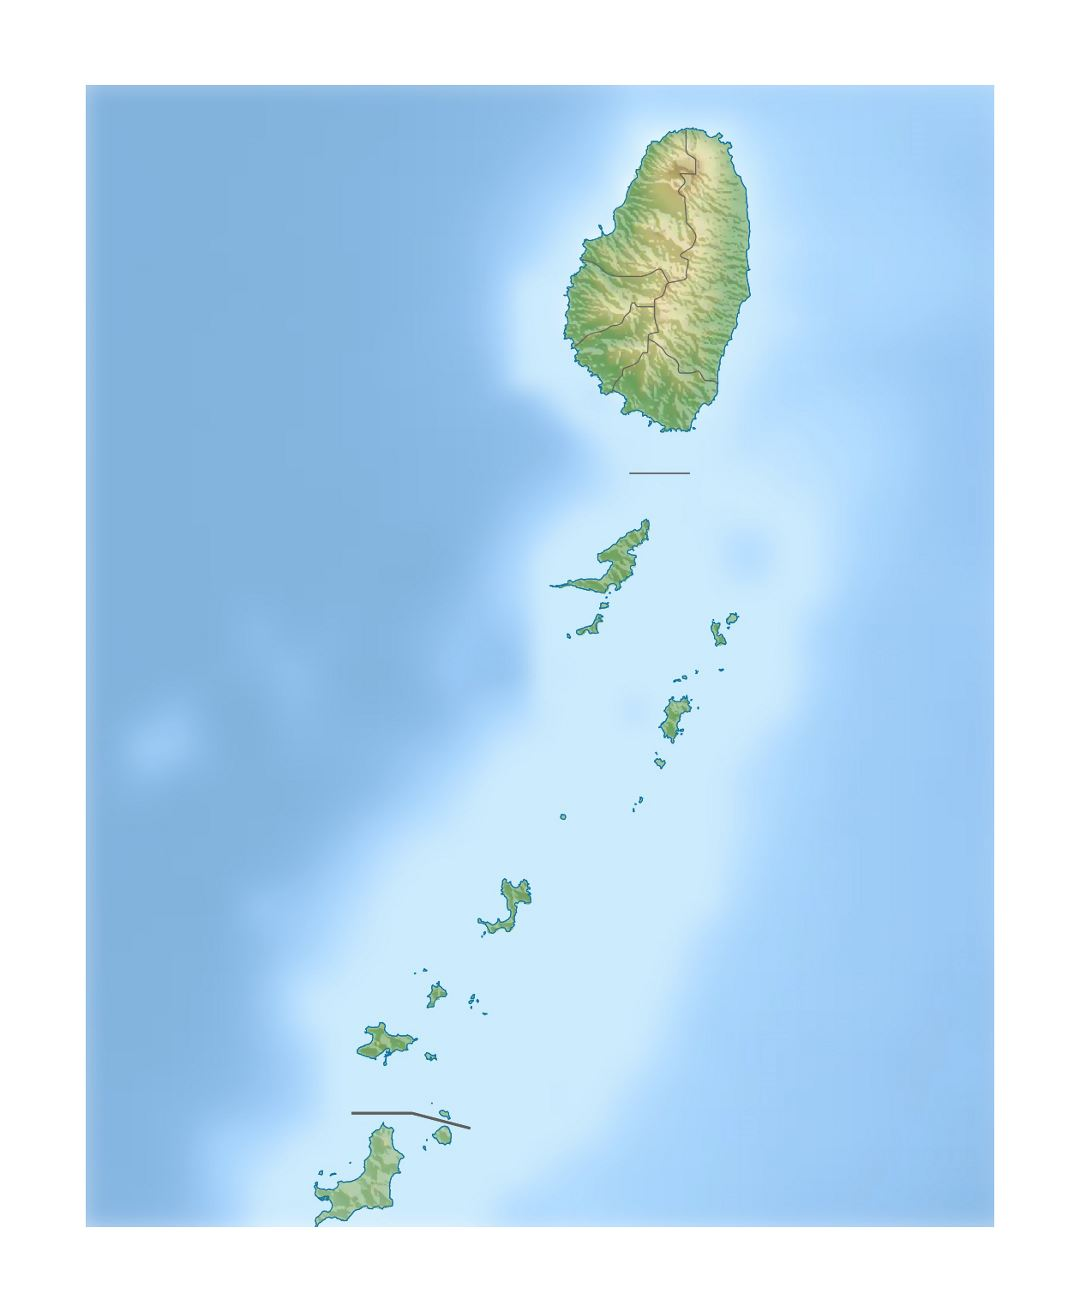 Large relief map of Saint Vincent and the Grenadines